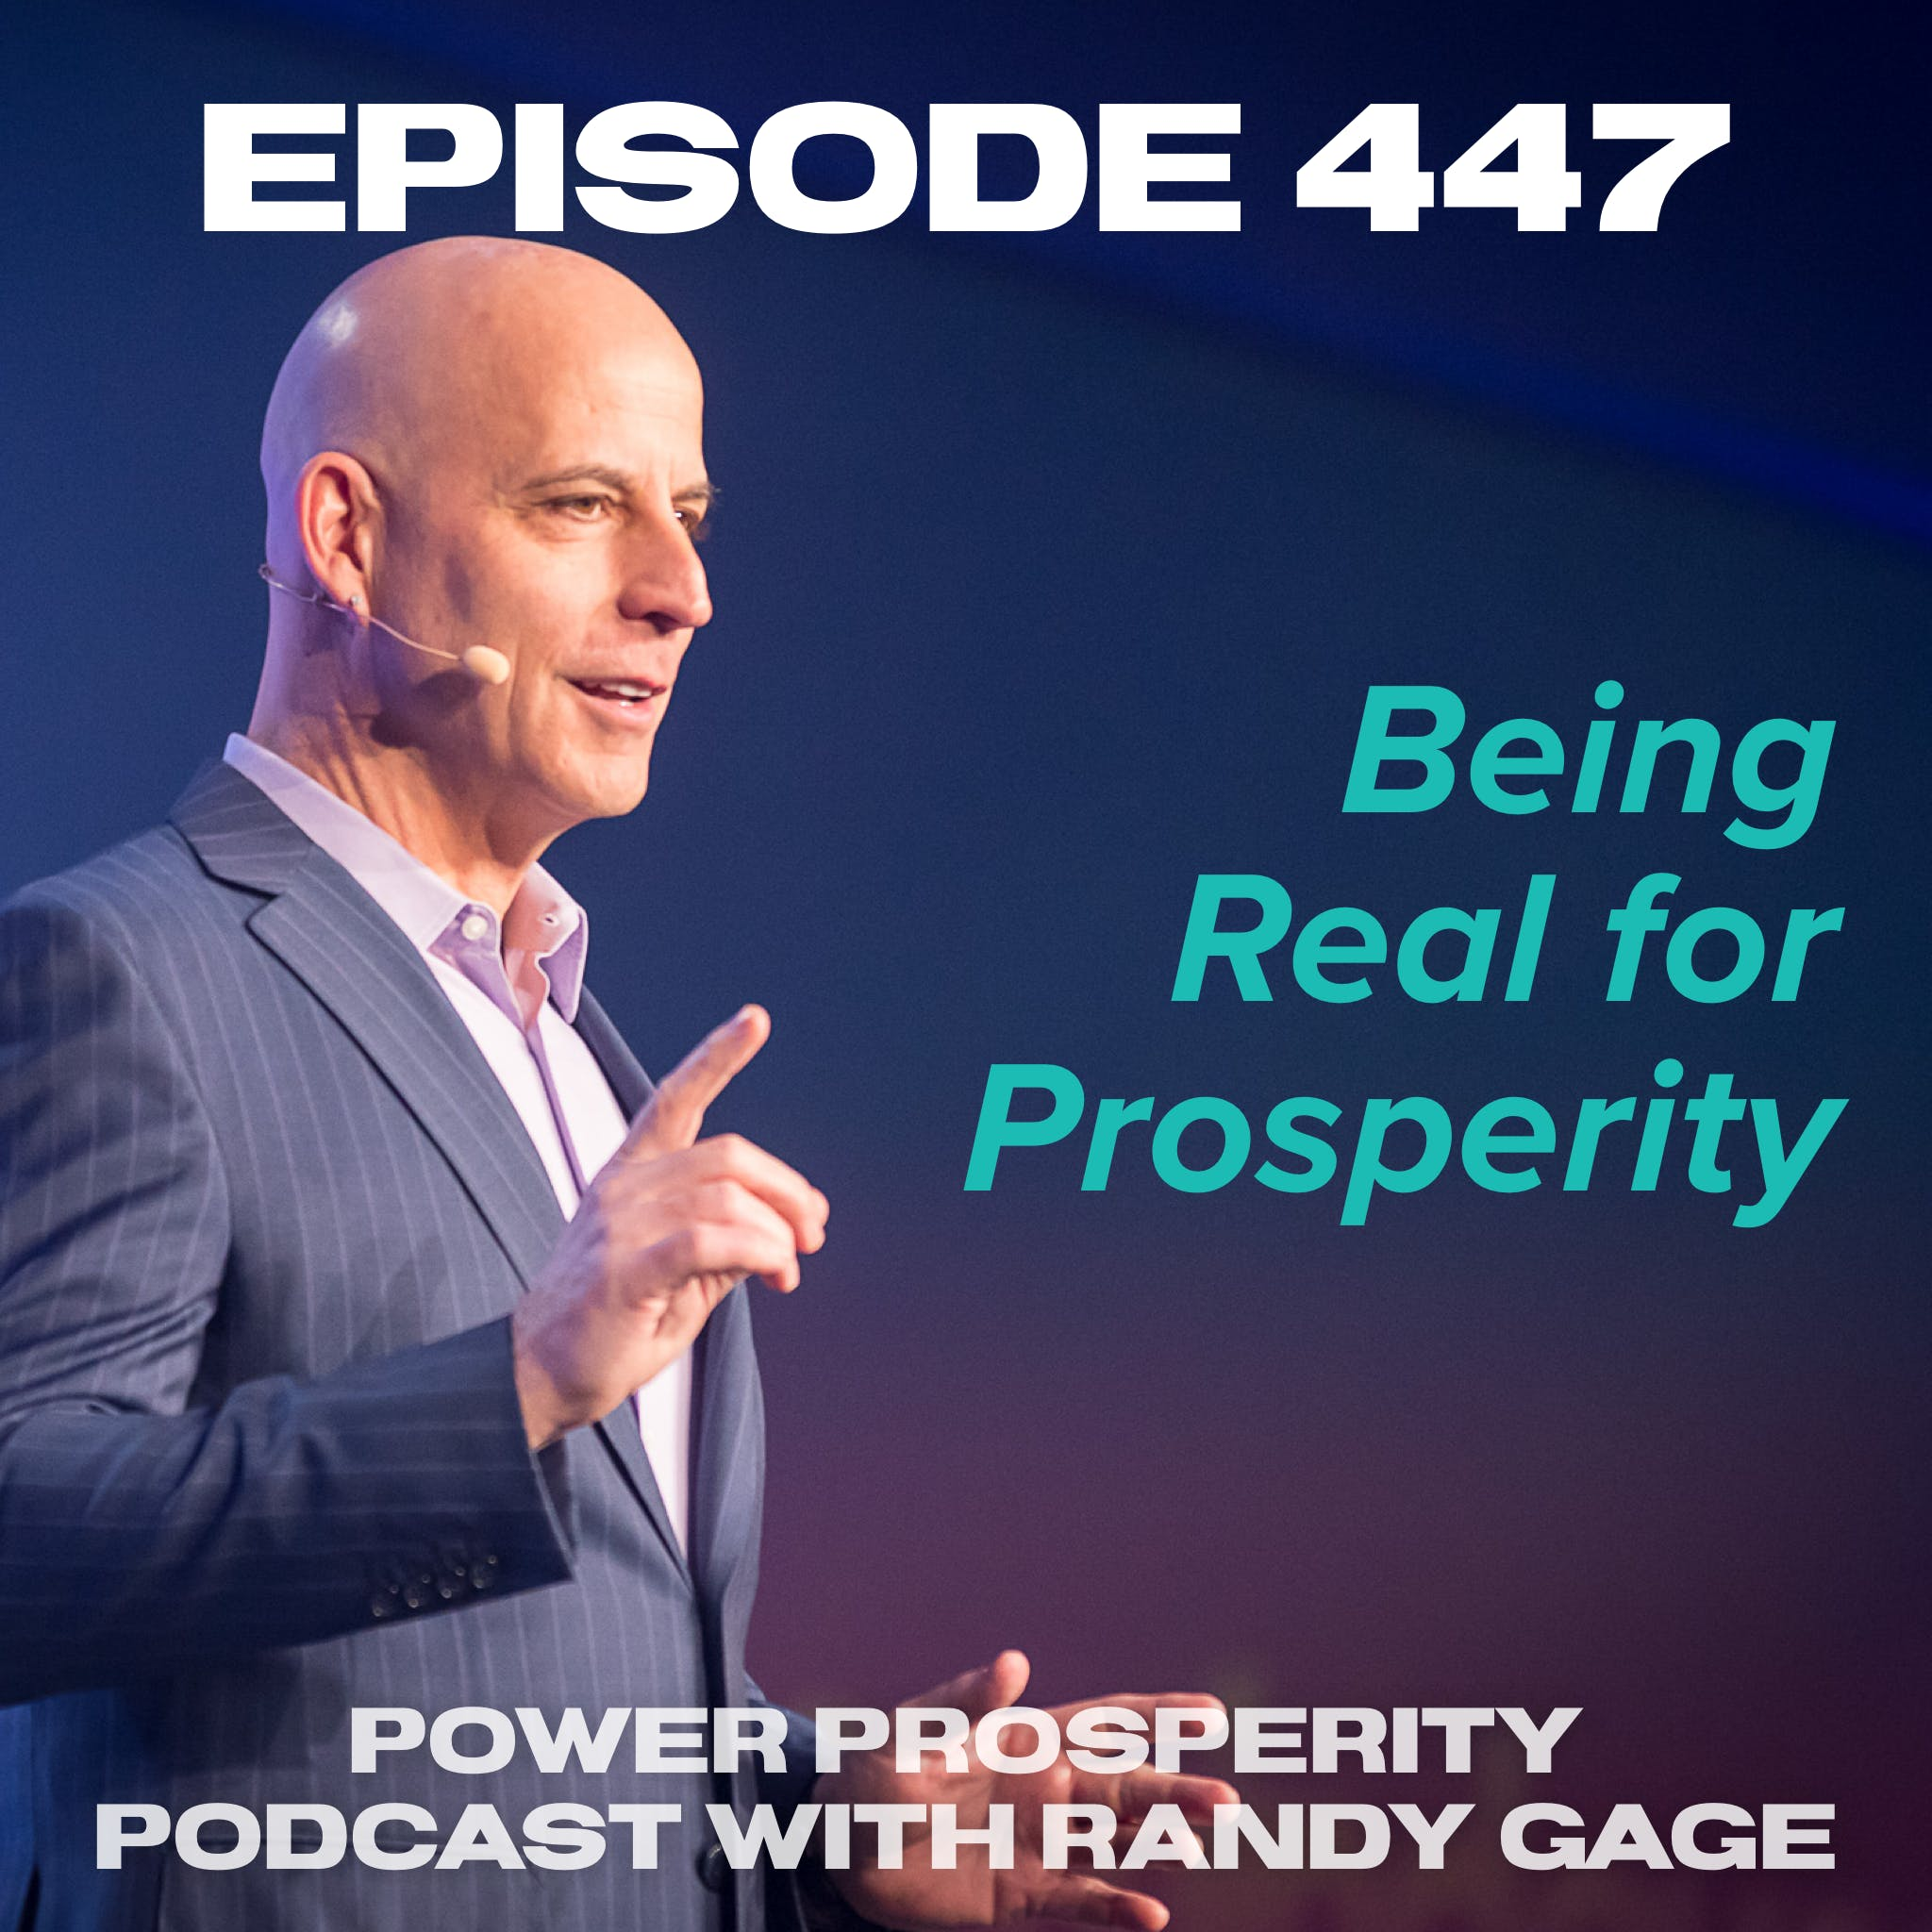 Episode 447: Being Real for Prosperity